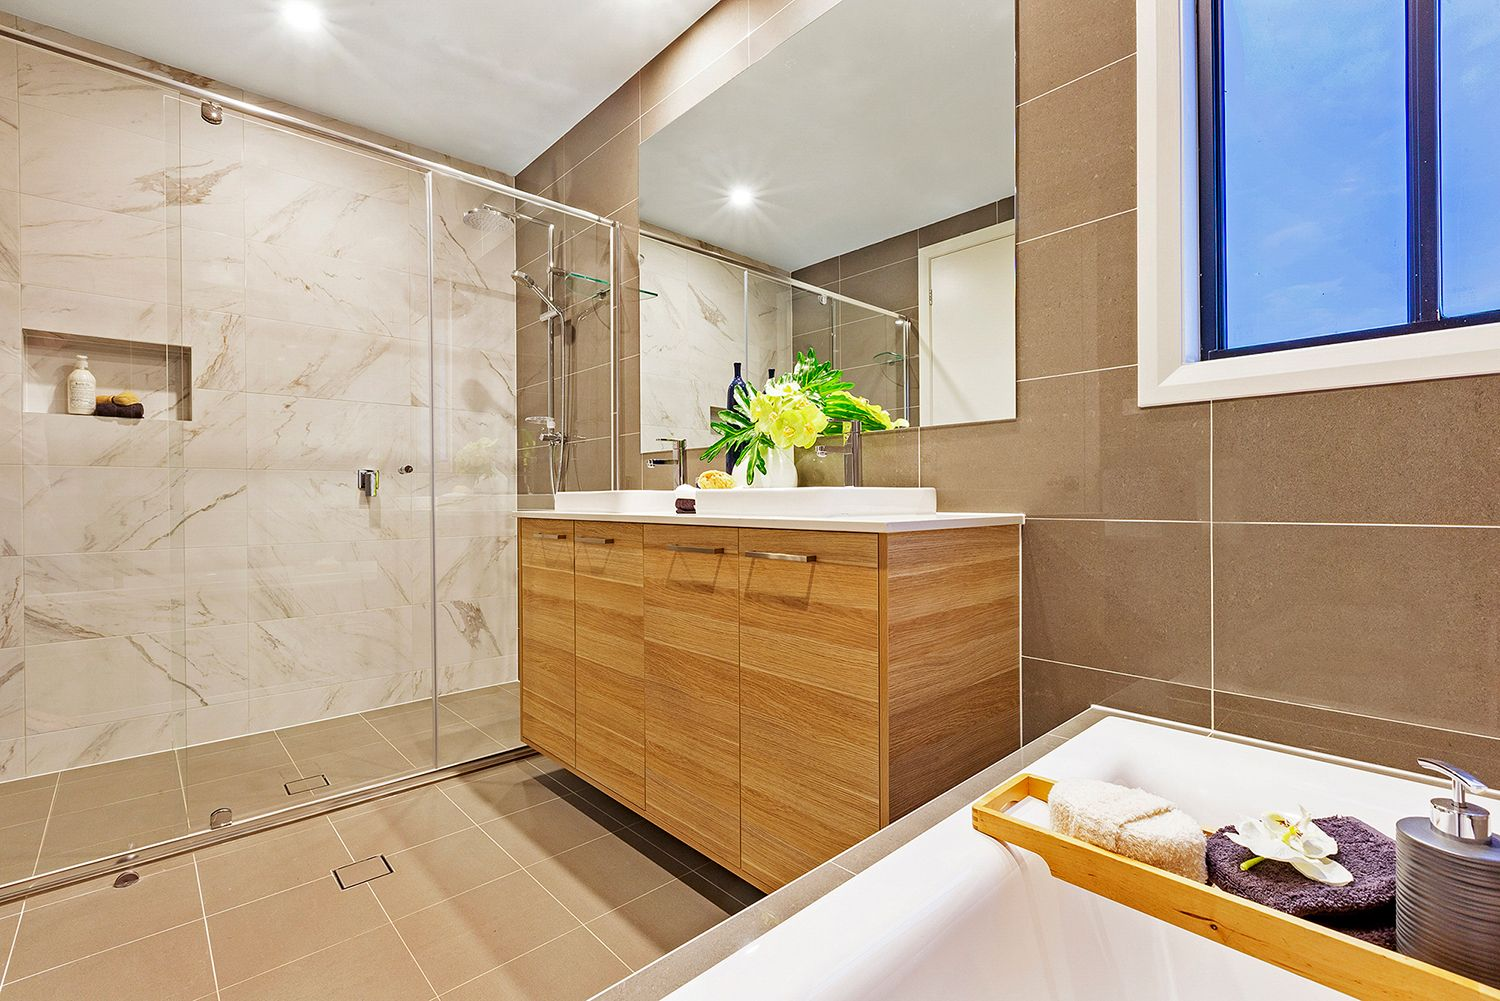 The Nova Display by Mojo Homes Sydney. A wonderful family bathroom space featuring a rail shower, double basins and bath. #MojoHomes #Caroma #Bathroom #Design #Ideas #Home #Decor #Styling #Timber #Vanity #DoubleBasins #Tiles #Inspiration #NewHome #weeklyhometrends   http://www.mojohomes.com.au/home-design/nova